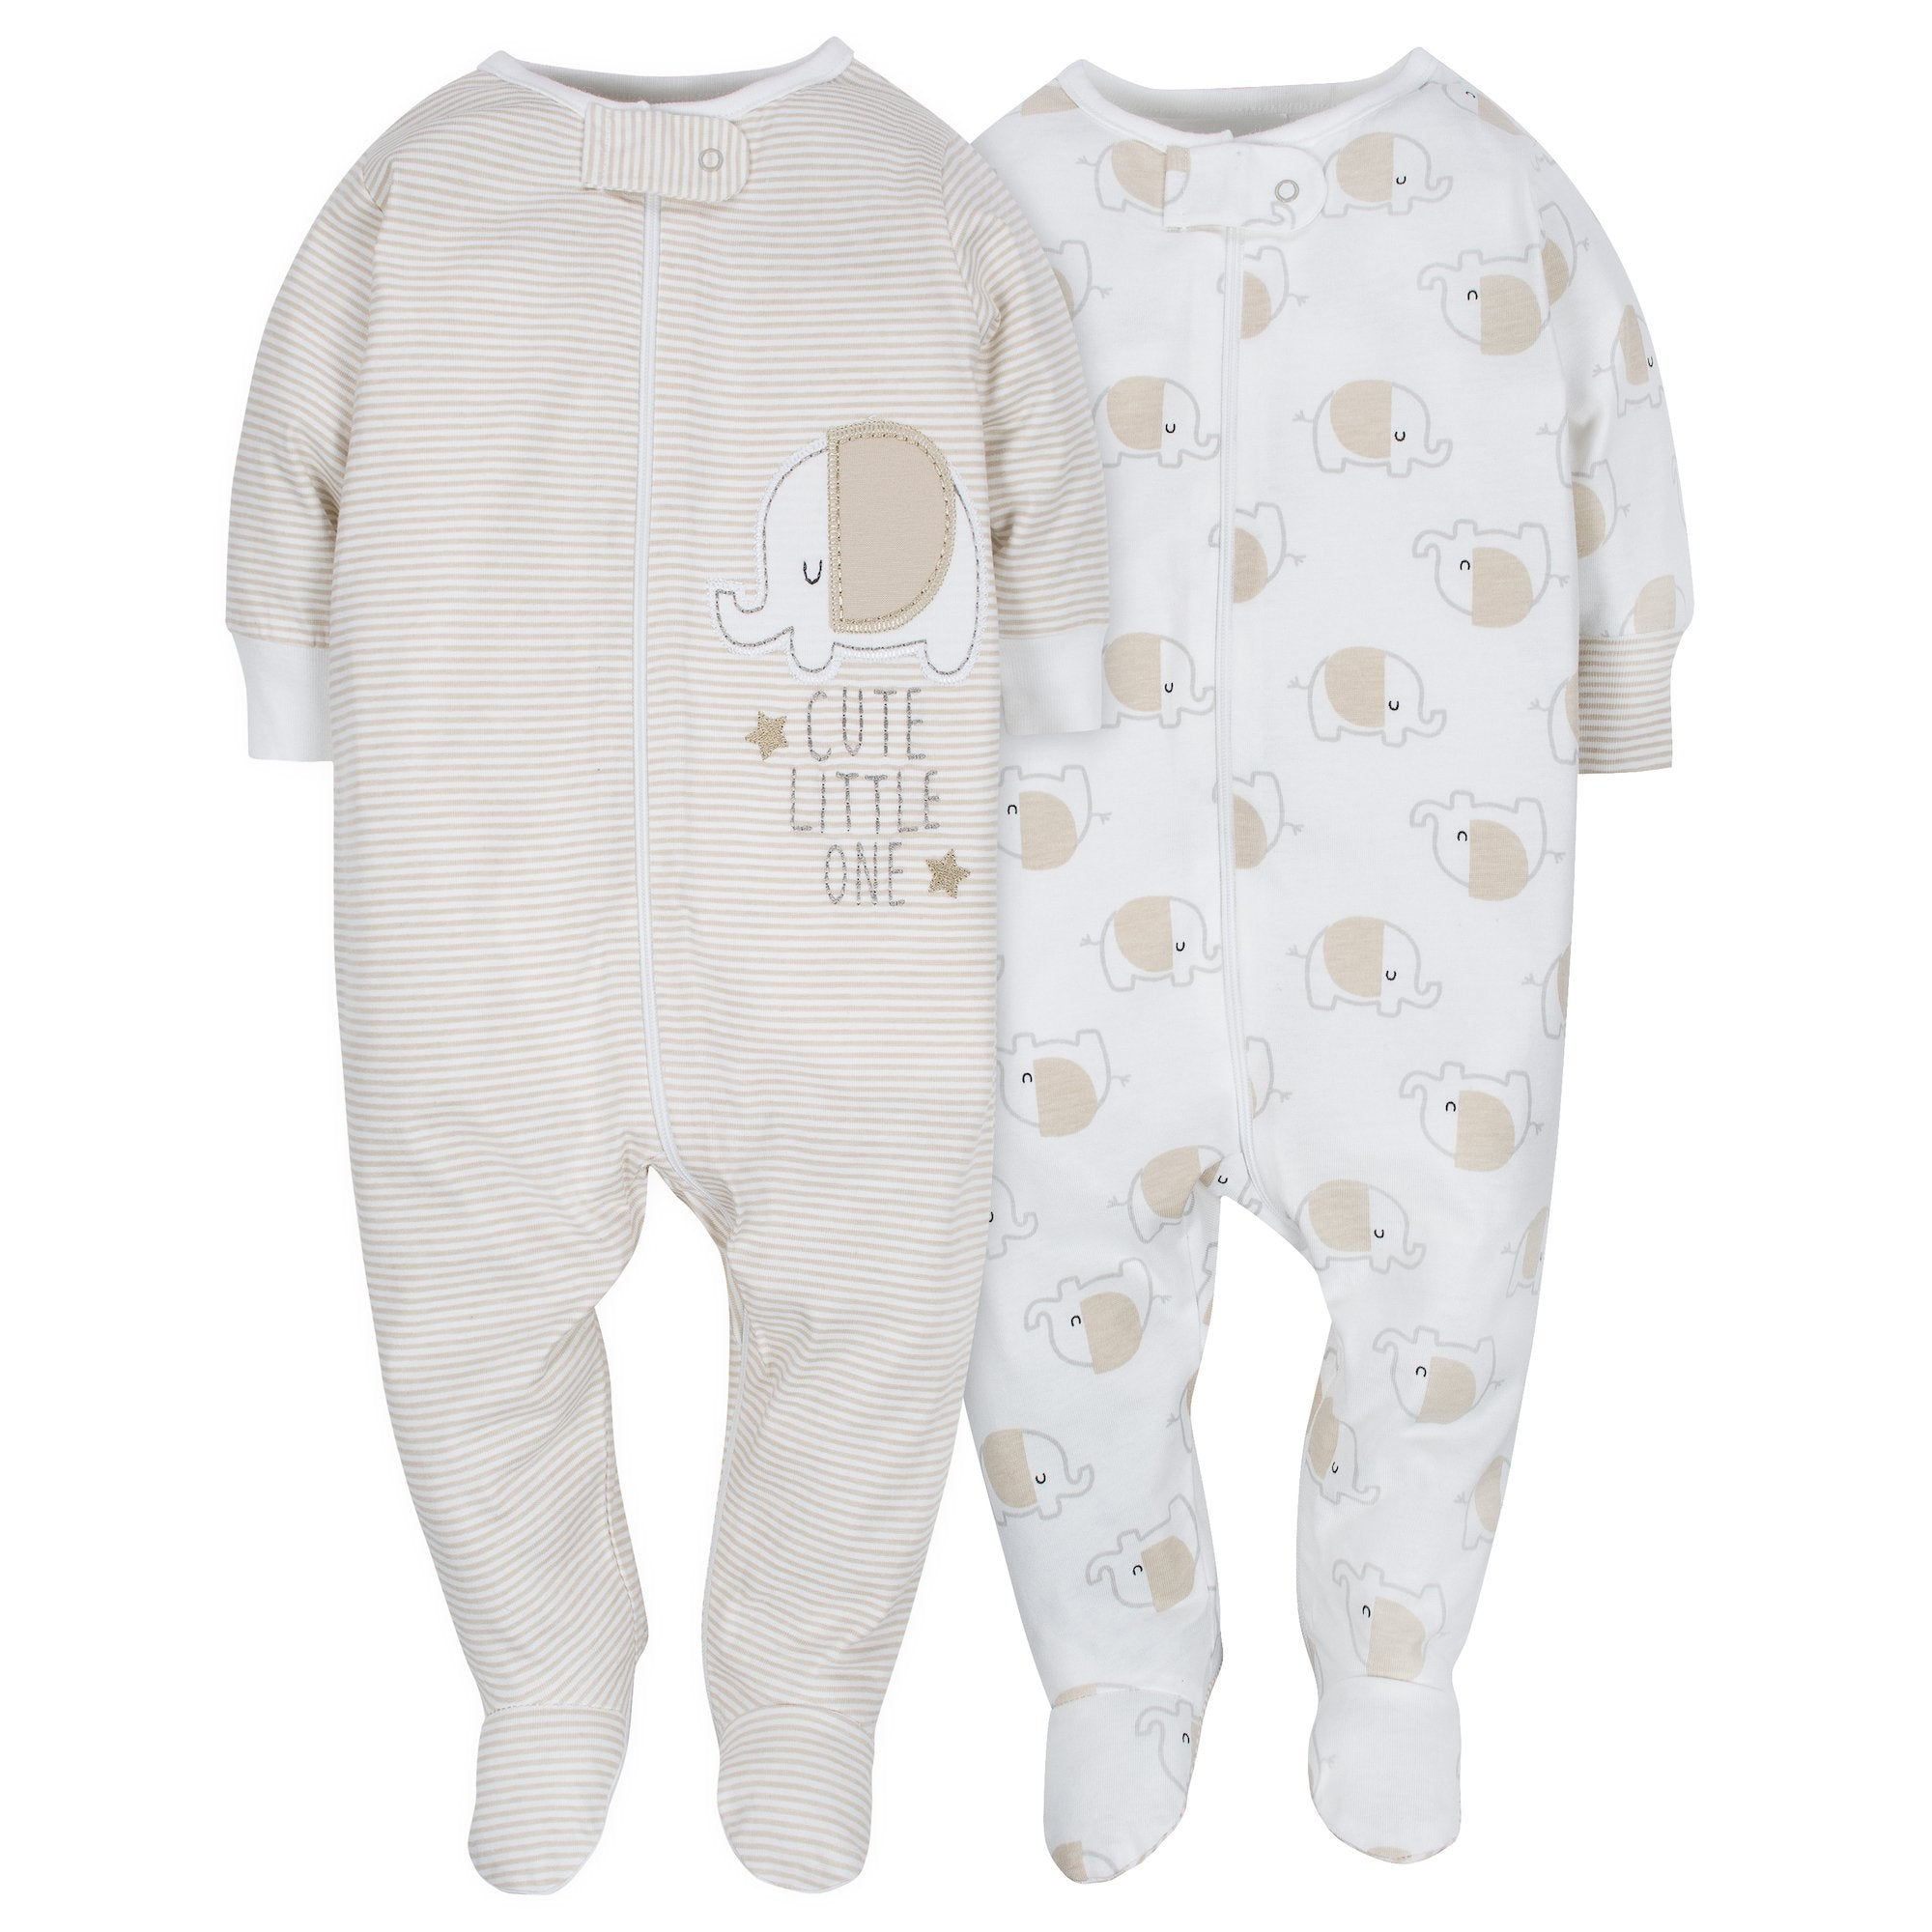 2-Pack Neutral Elephant Sleep N' Play